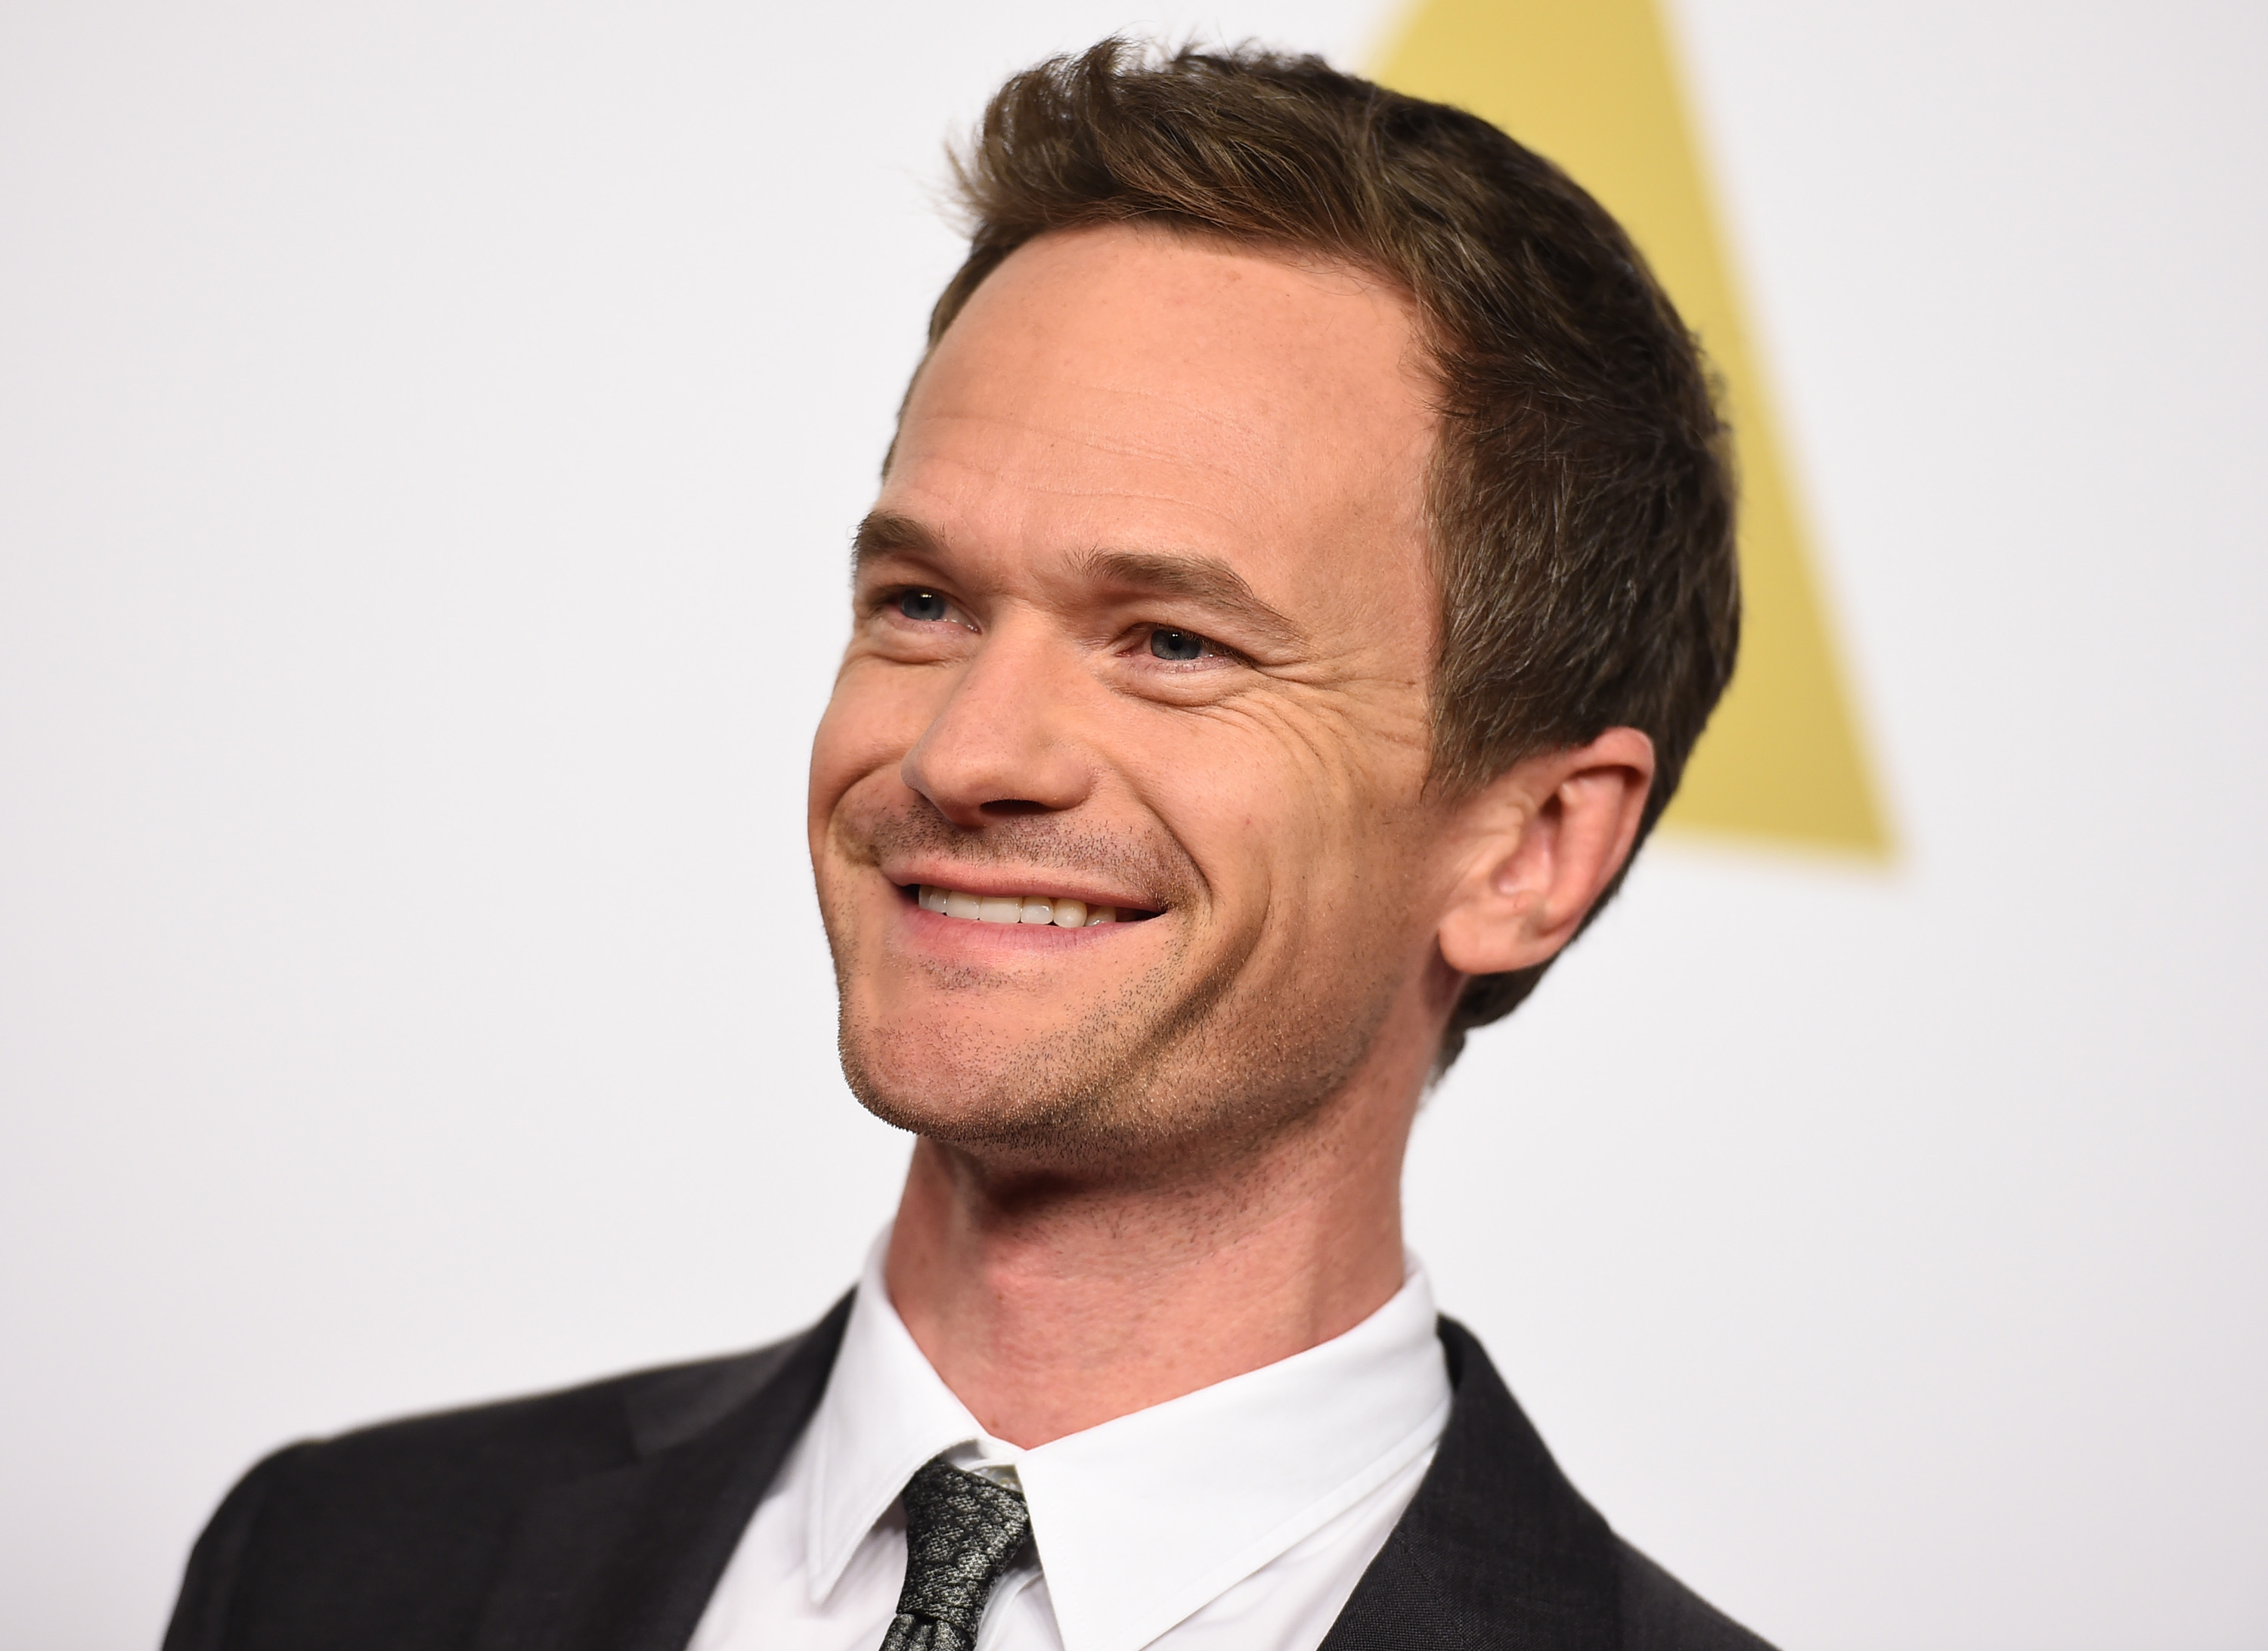 Neil Patrick Harris arrives at the 87th Academy Awards nominees luncheon at the Beverly Hilton Hotel on Monday, Feb. 2, 2015,